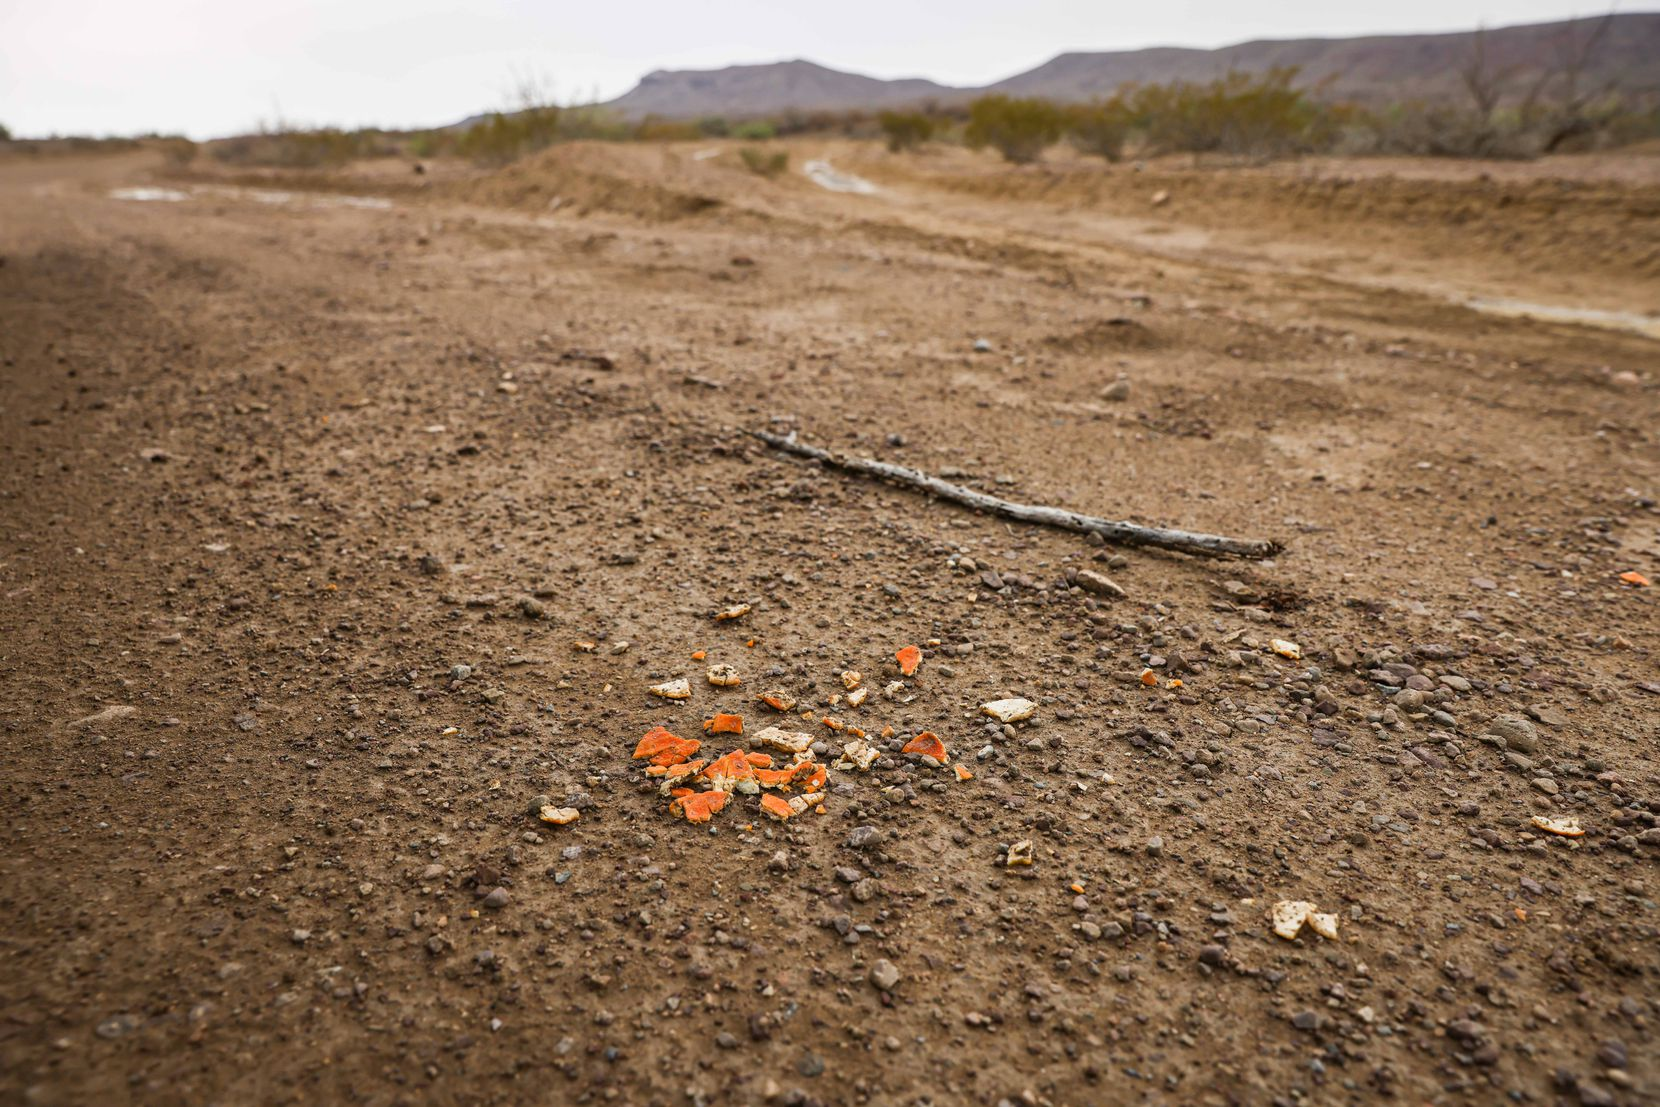 Orange peels lie on the ground in Jeff Davis County. Culberson County Sheriff Oscar Carrillo said he received a distress call from a rancher using a satellite phone on June 21. The rancher had found two migrants in the desert: Raul, 35, and his son Christian, 15.